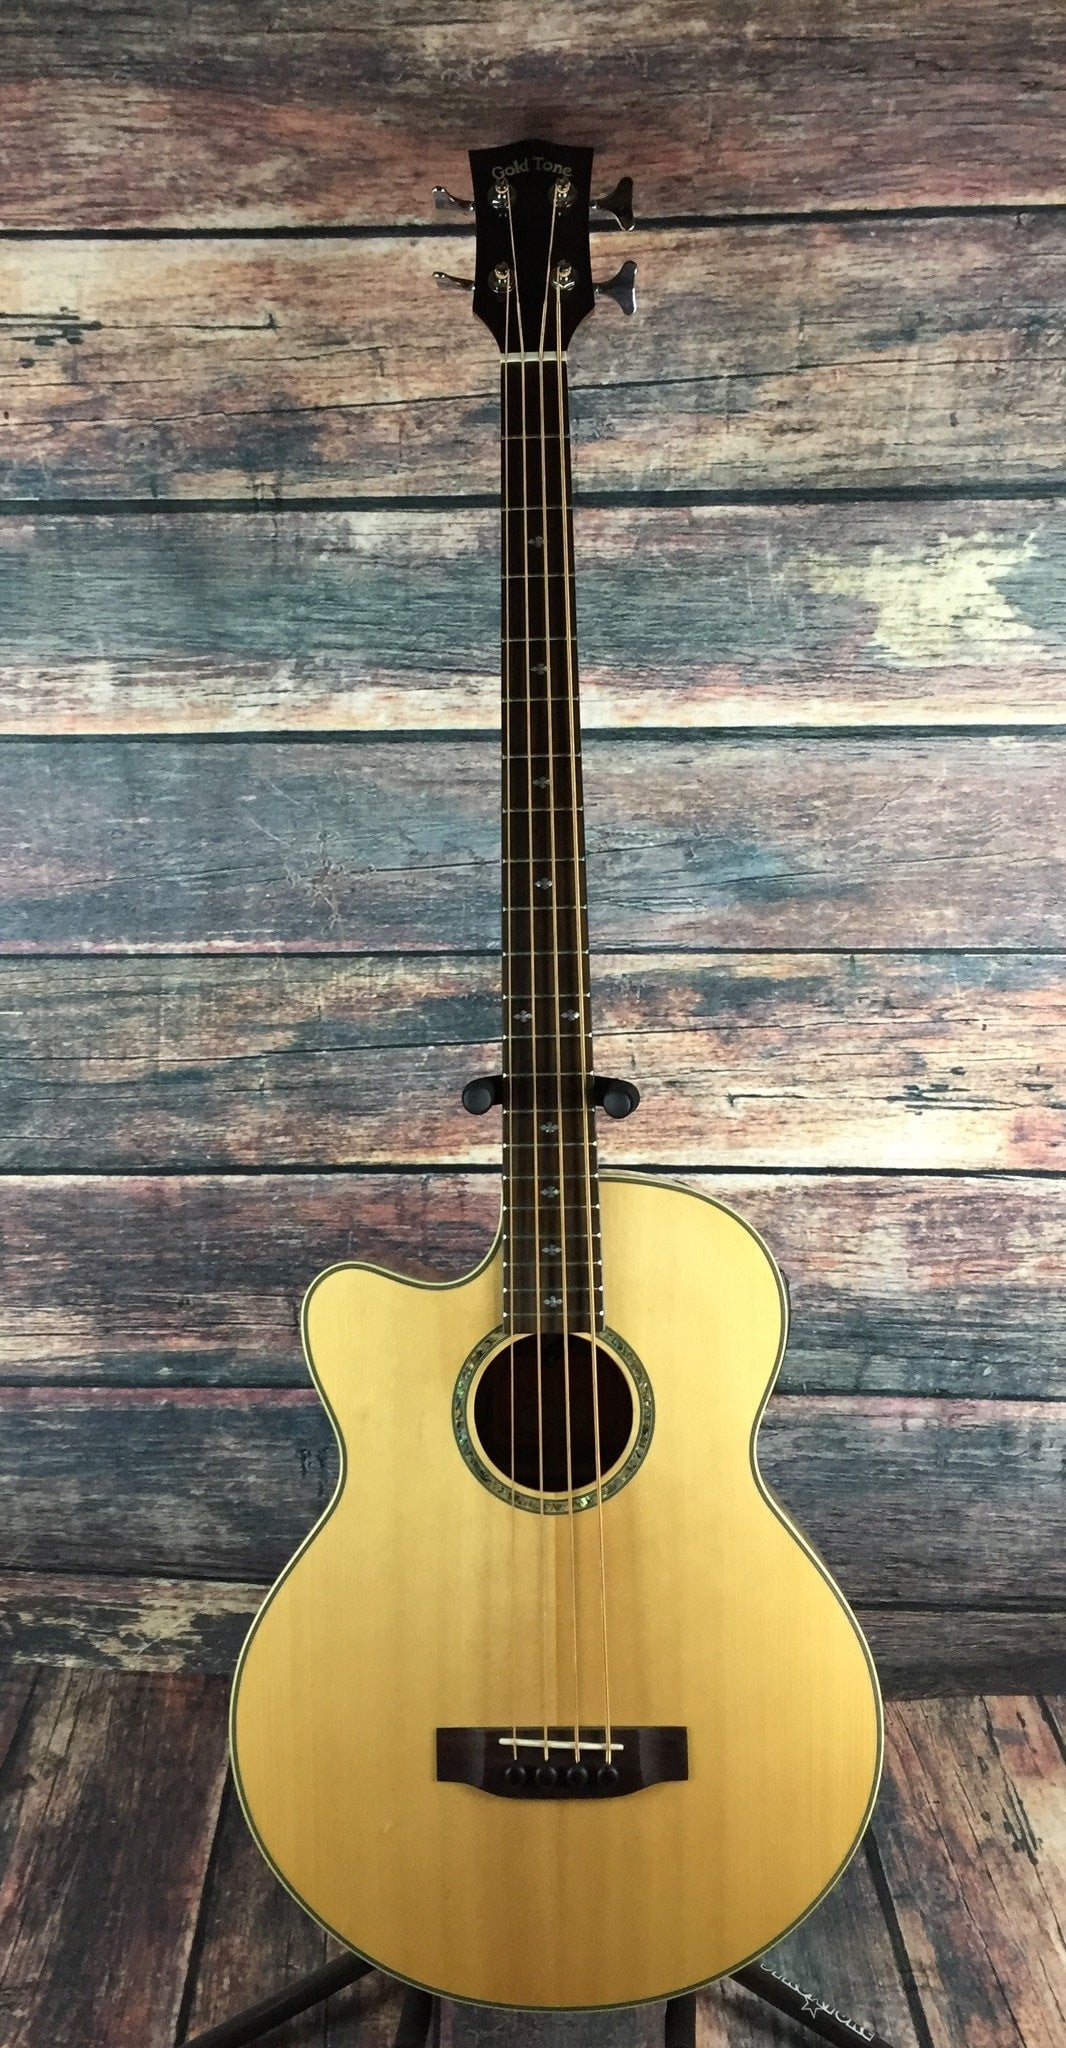 GoldTone Acoustic Bass Gold Tone Left Handed ABG-4 Acoustic Electric Bass